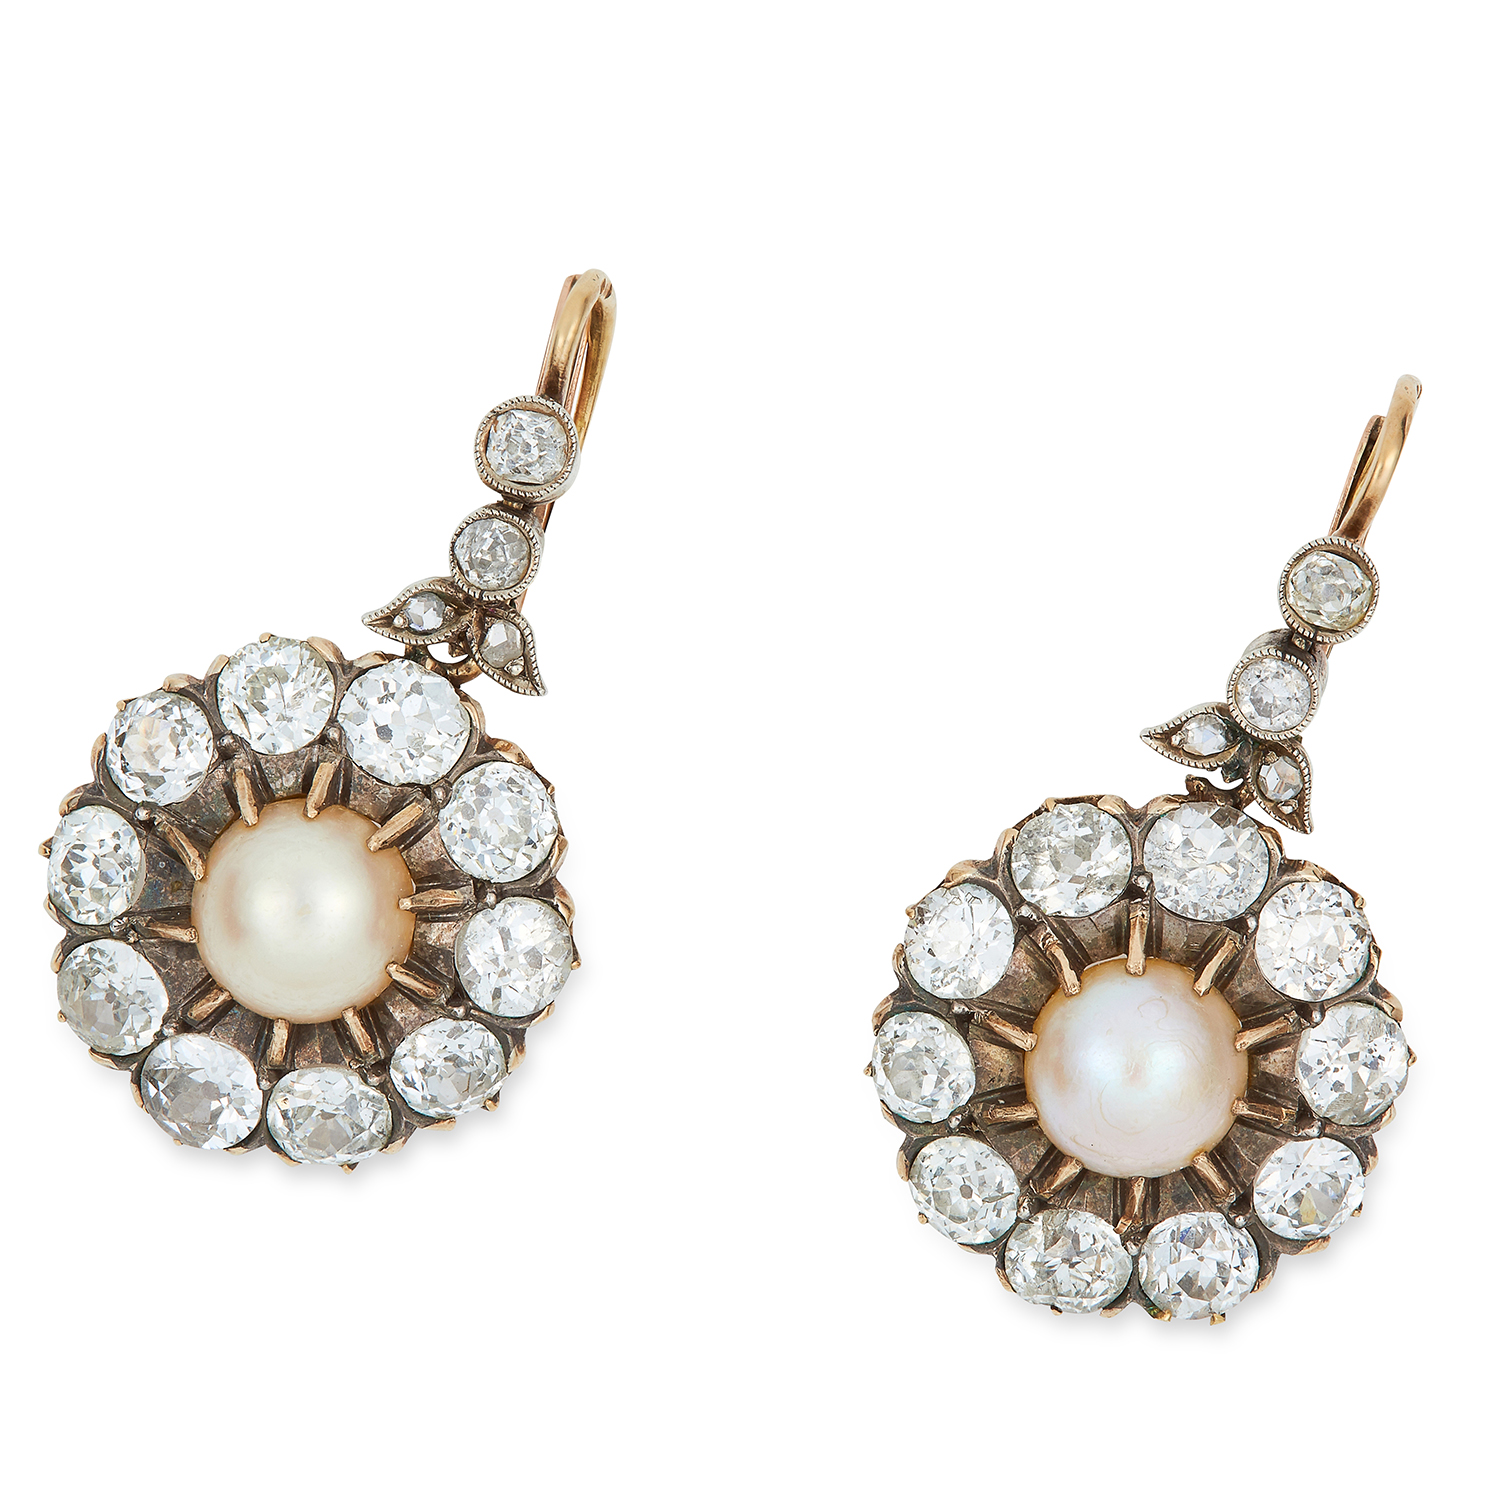 Los 5 - ANTIQUE PEARL AND DIMOND CLUSTER EARRINGS, the pearls of 7.6mm within clusters of old cut diamonds